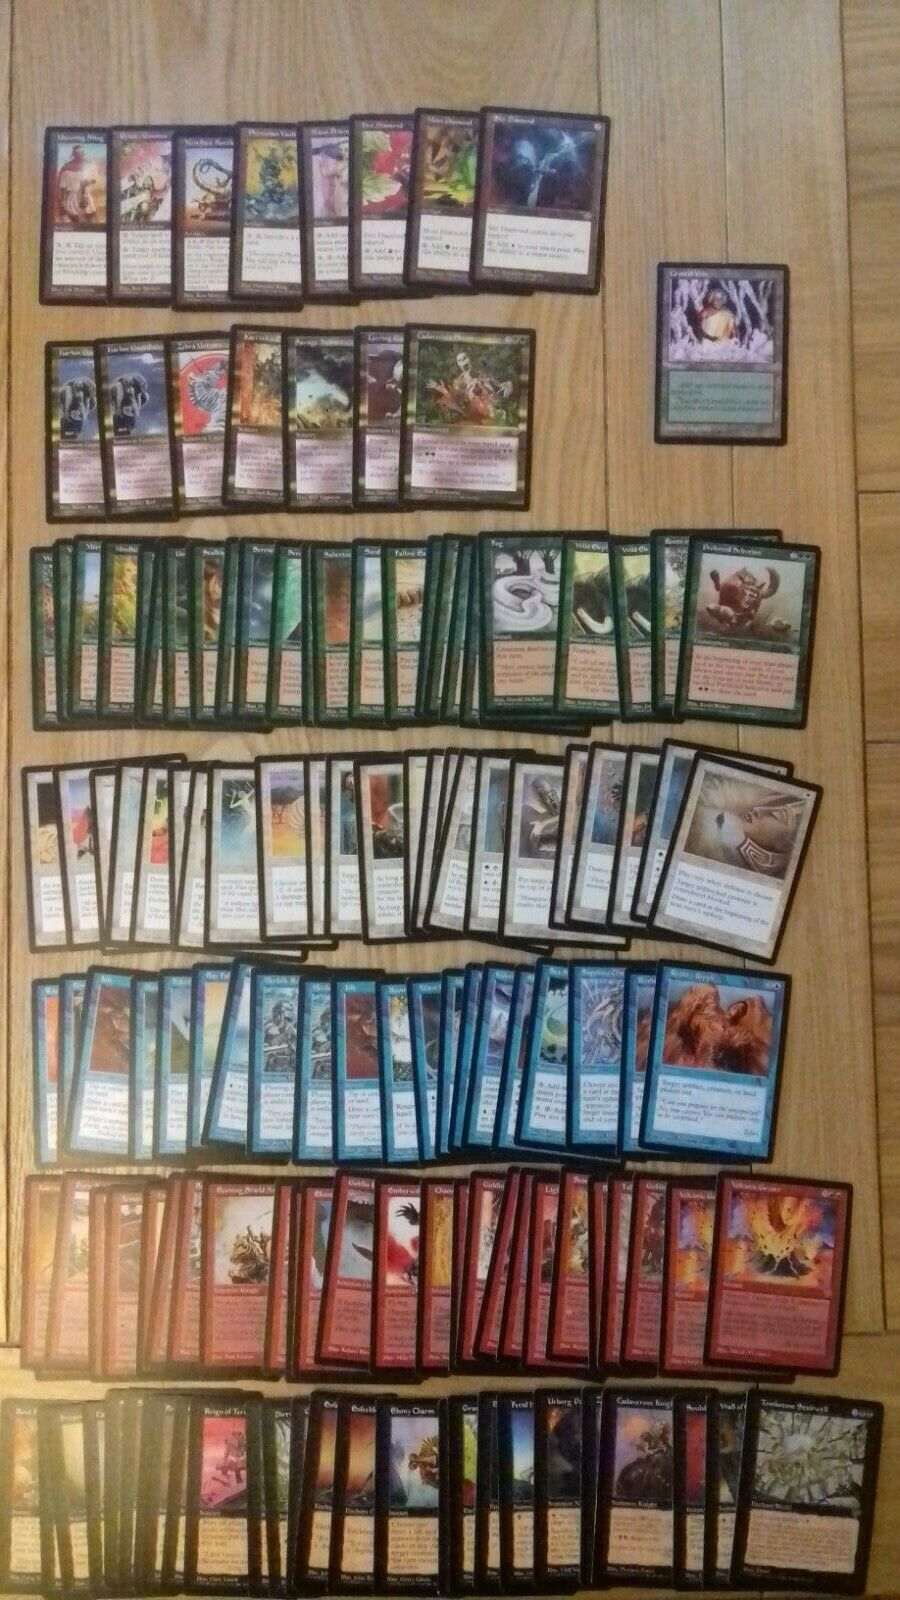 Magic The Gathering Cards - Mirage - - - Mixed Set - over 135 cards b34e32